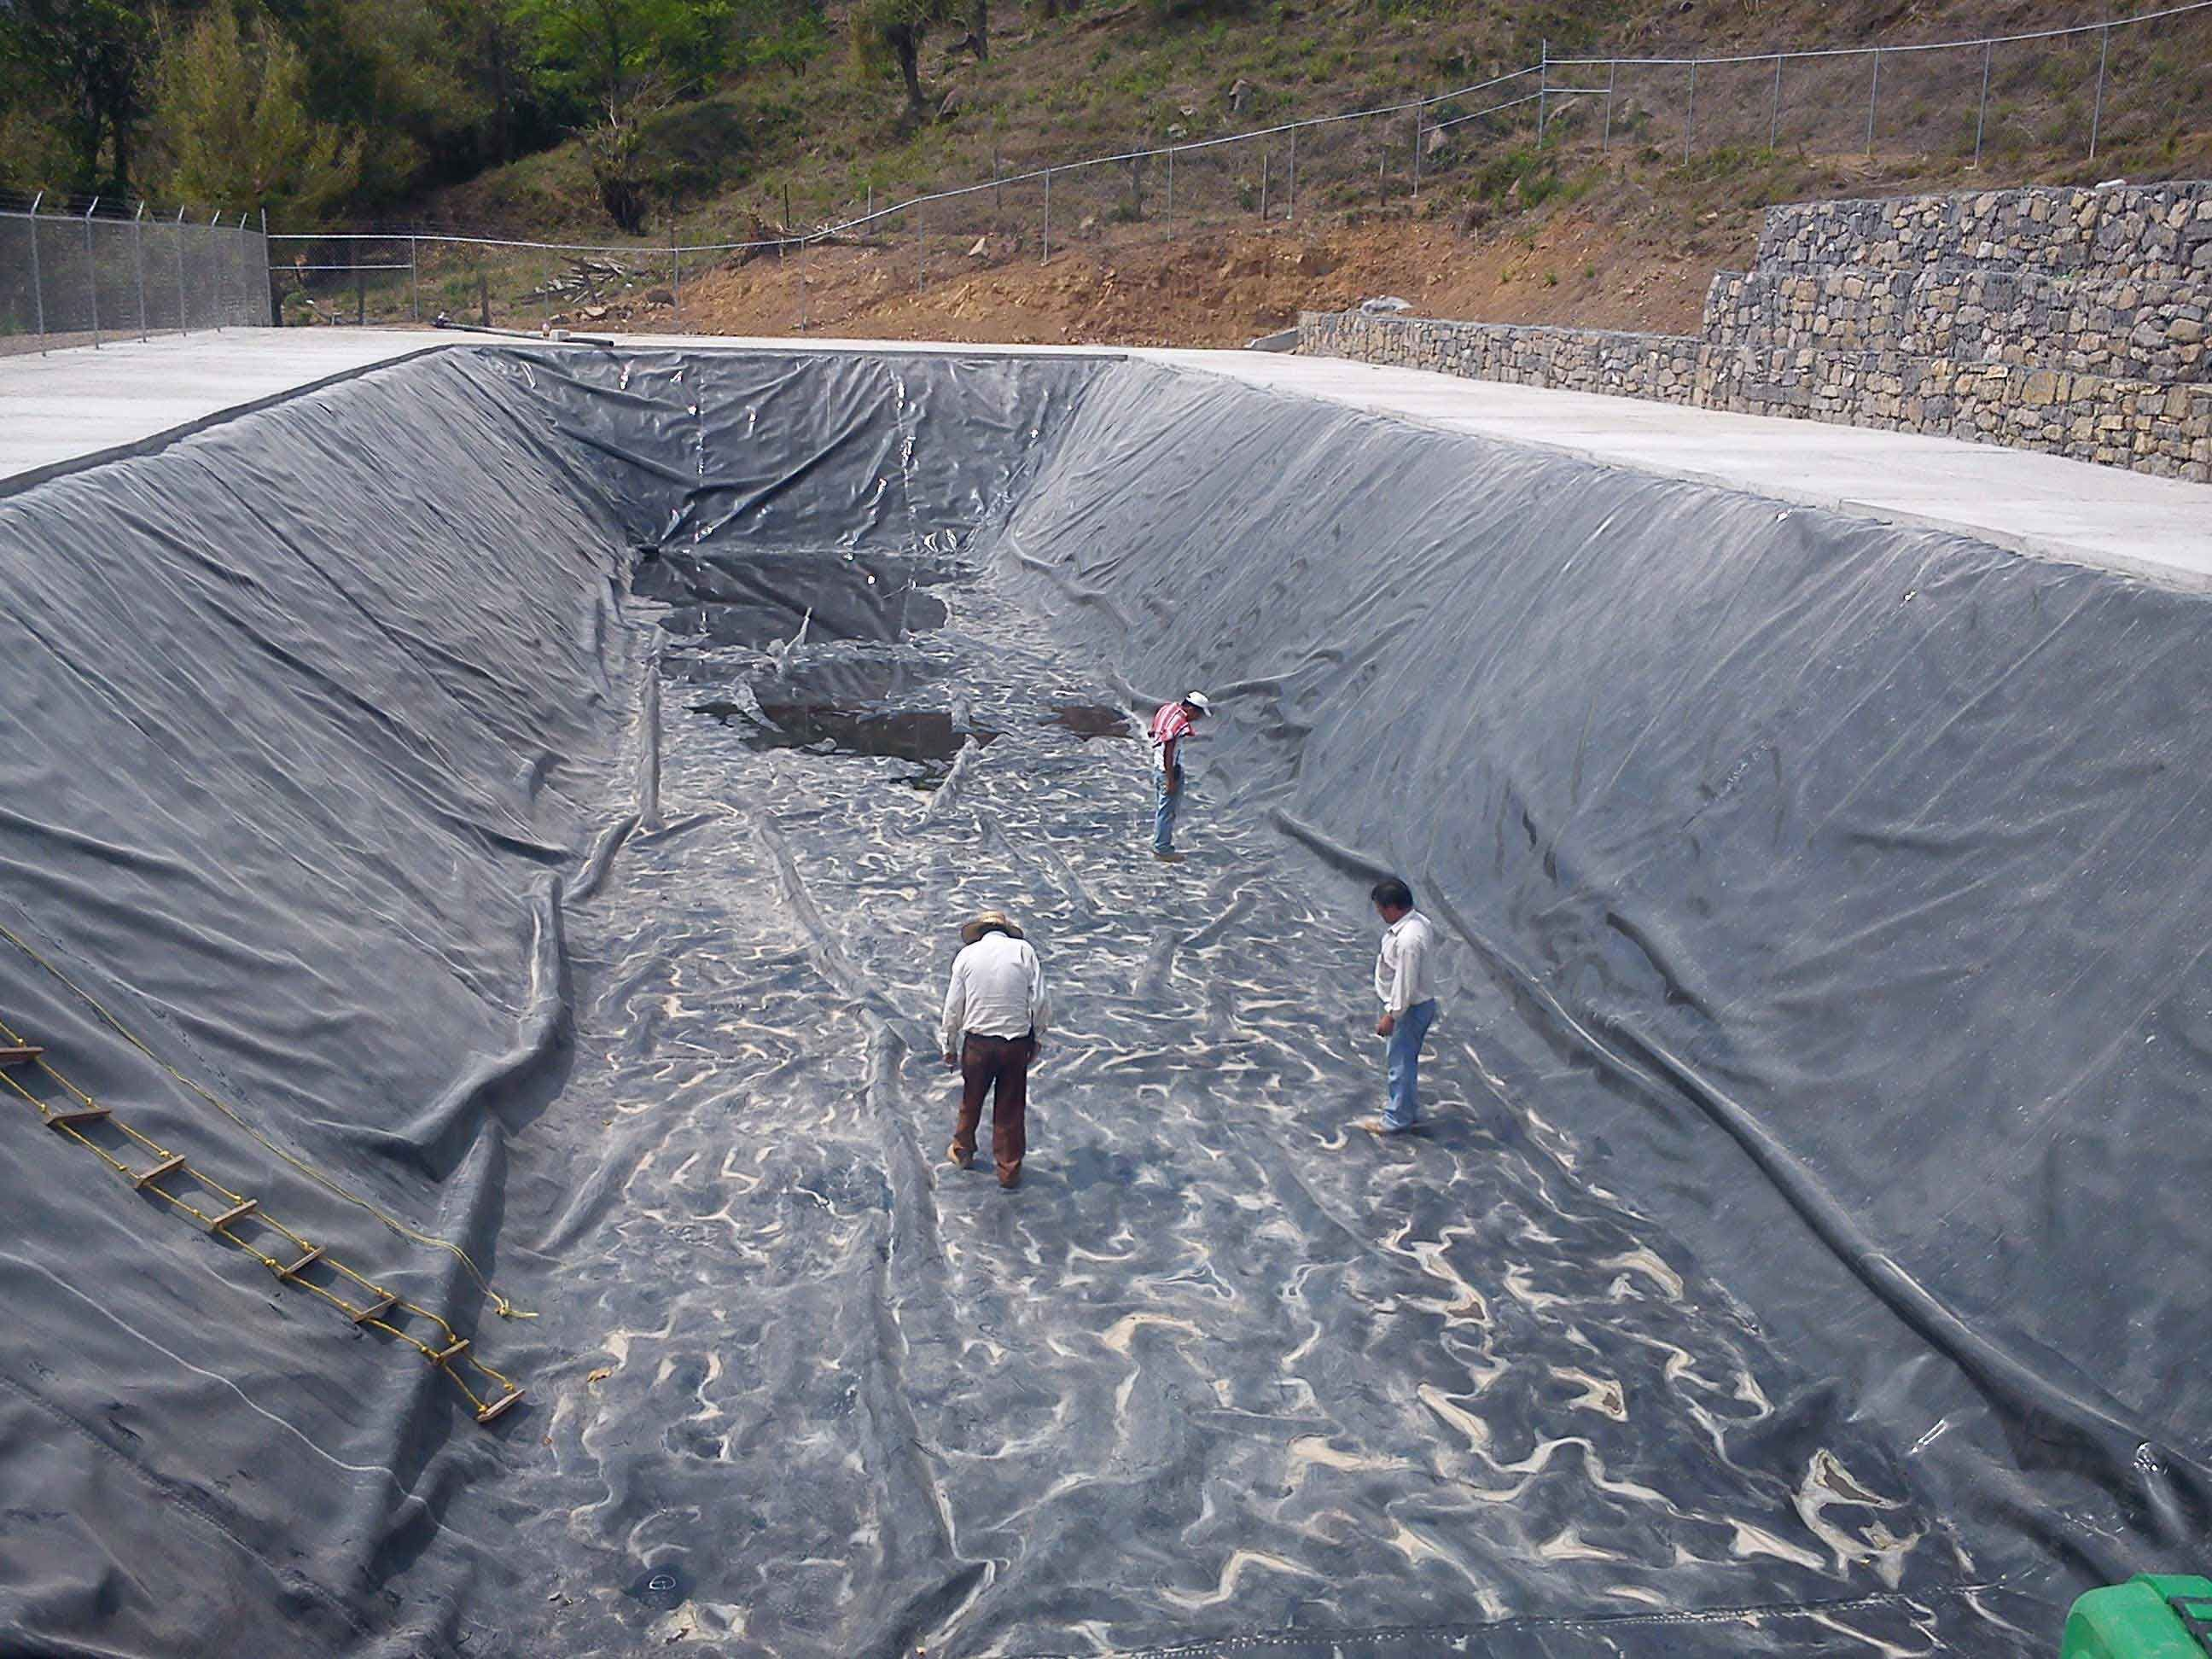 Olla de captaci n con geomembrana de polietileno hdpe for Estanques de geomembrana precios en colombia